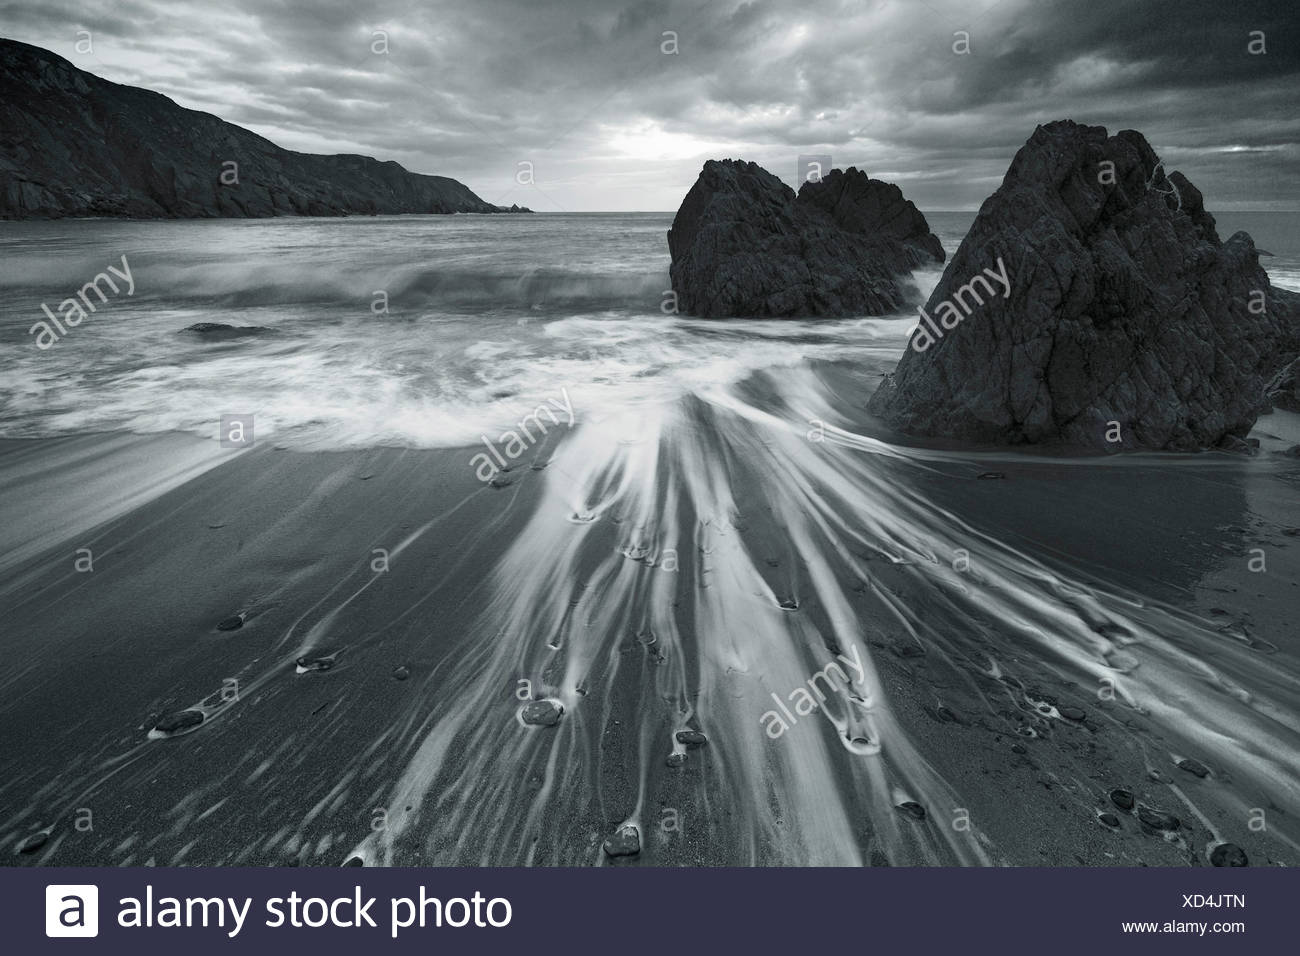 Sea water moving over sand and around rocks on a beach - Stock Image